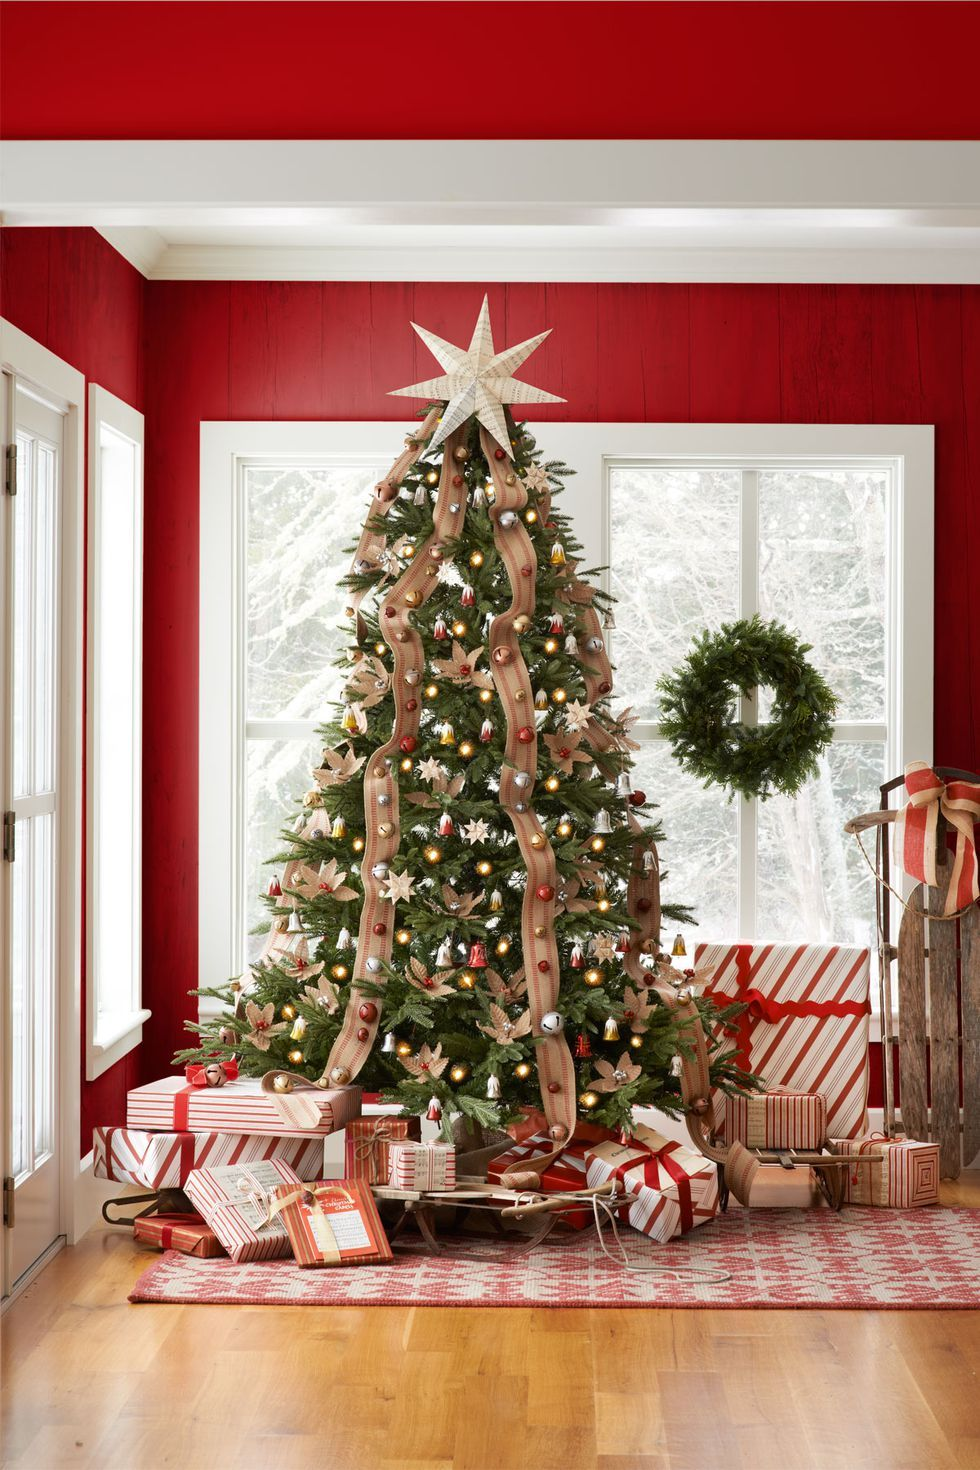 30 Decorated Christmas Tree Ideas Pictures Of Christmas